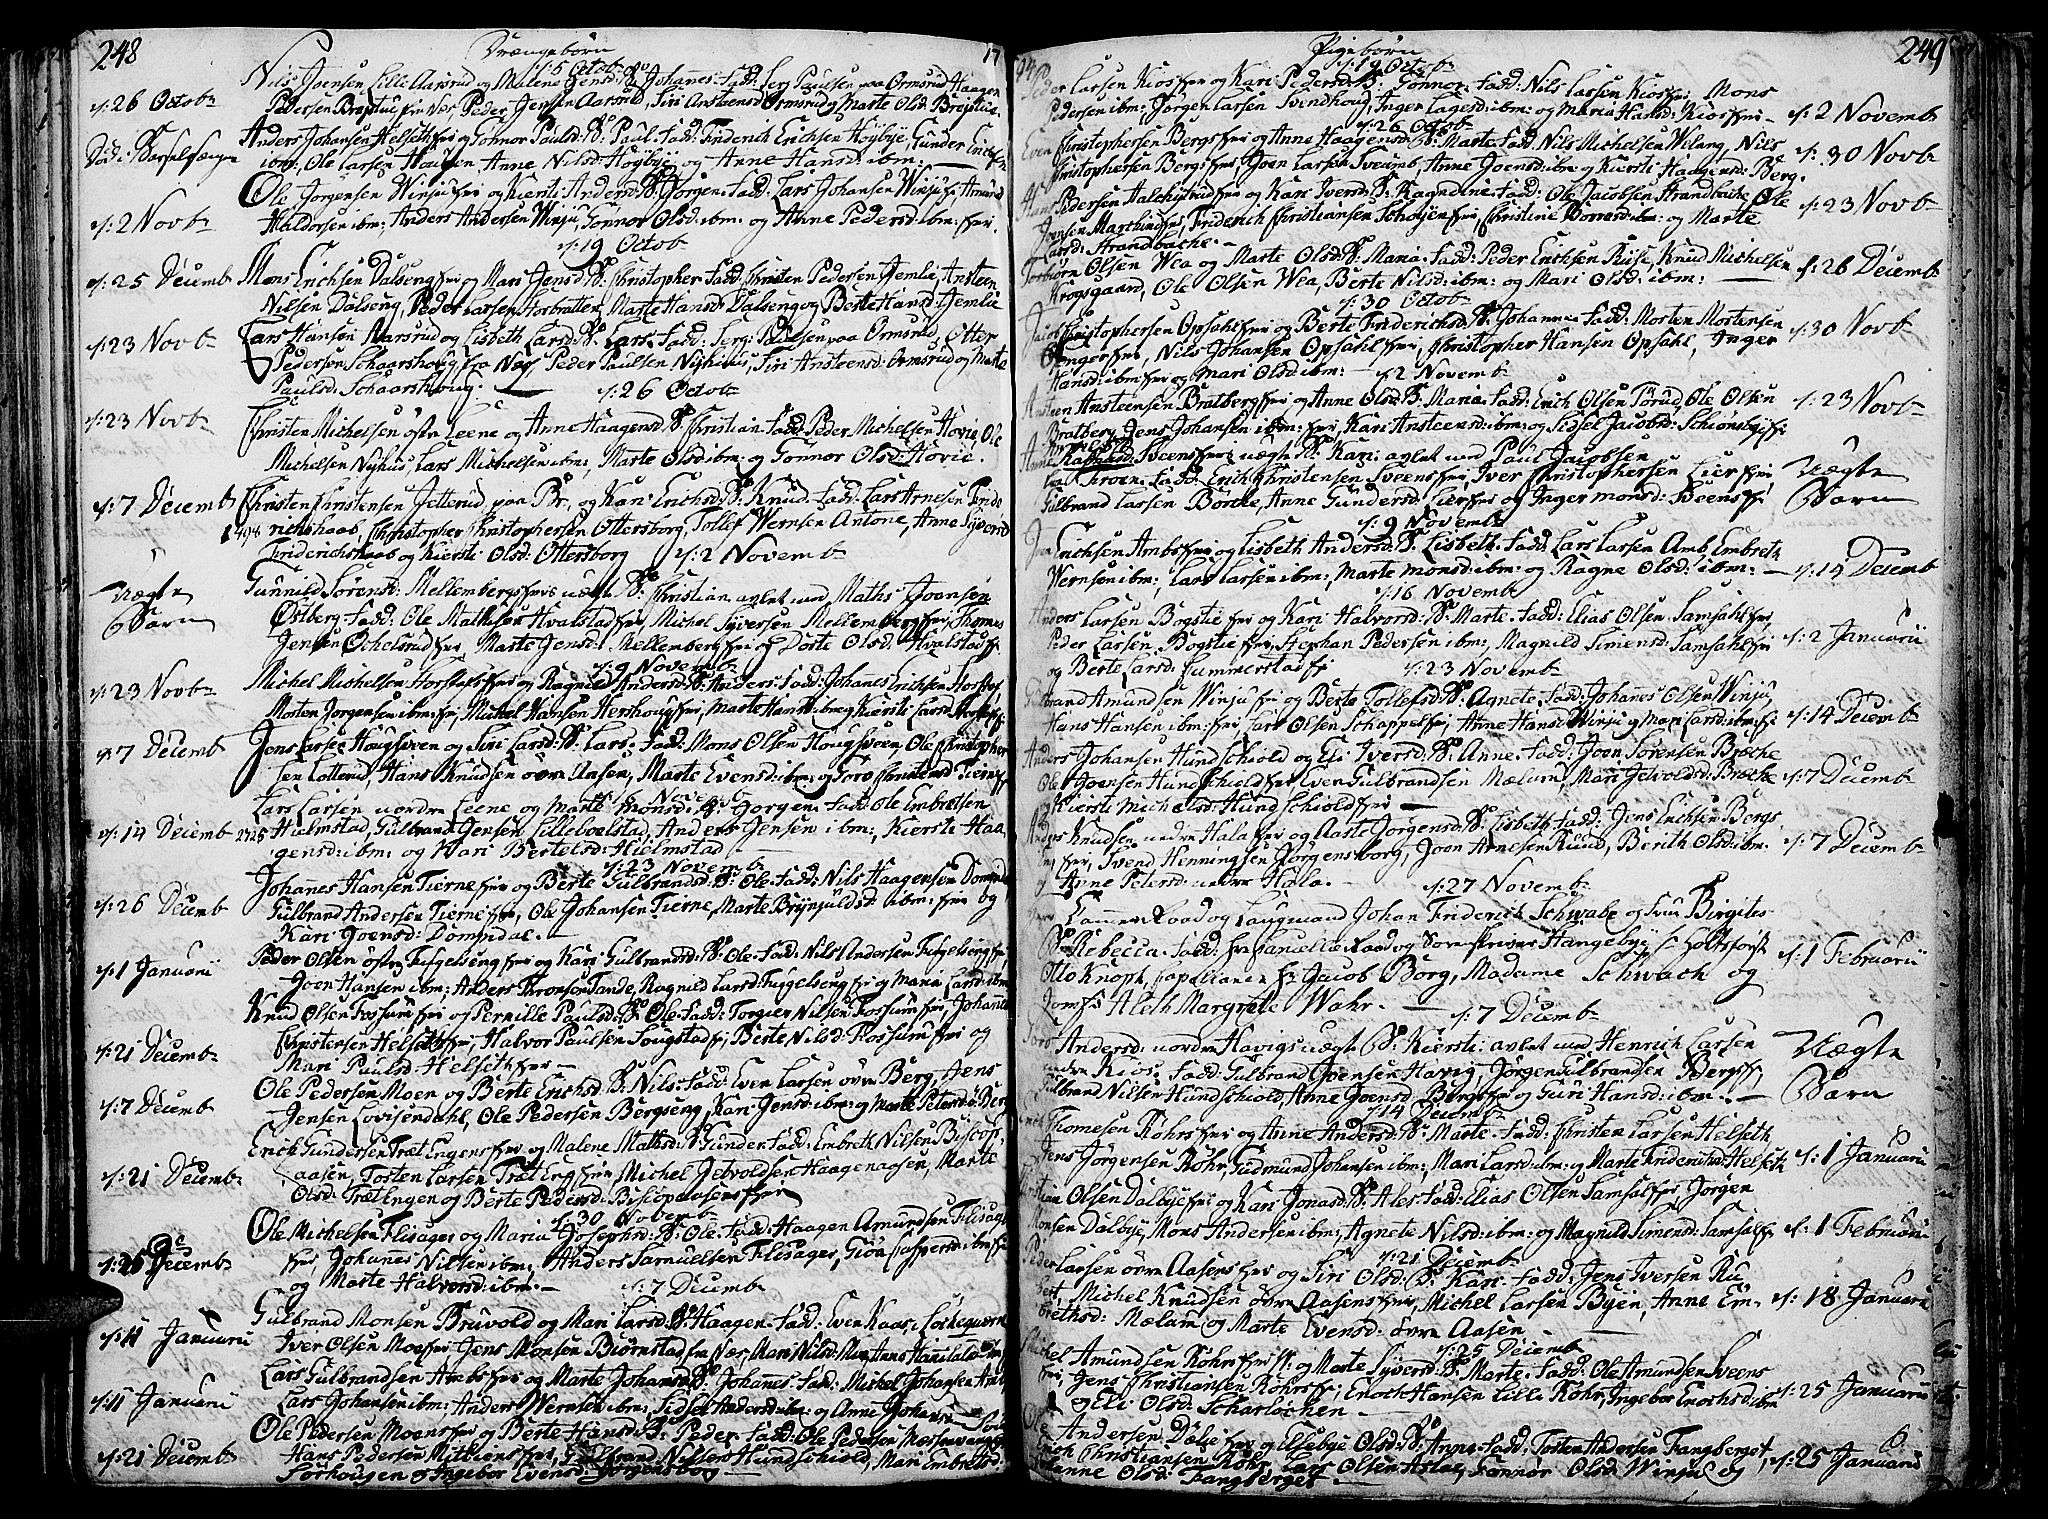 SAH, Ringsaker prestekontor, K/Ka/L0003: Parish register (official) no. 3, 1775-1798, p. 248-249